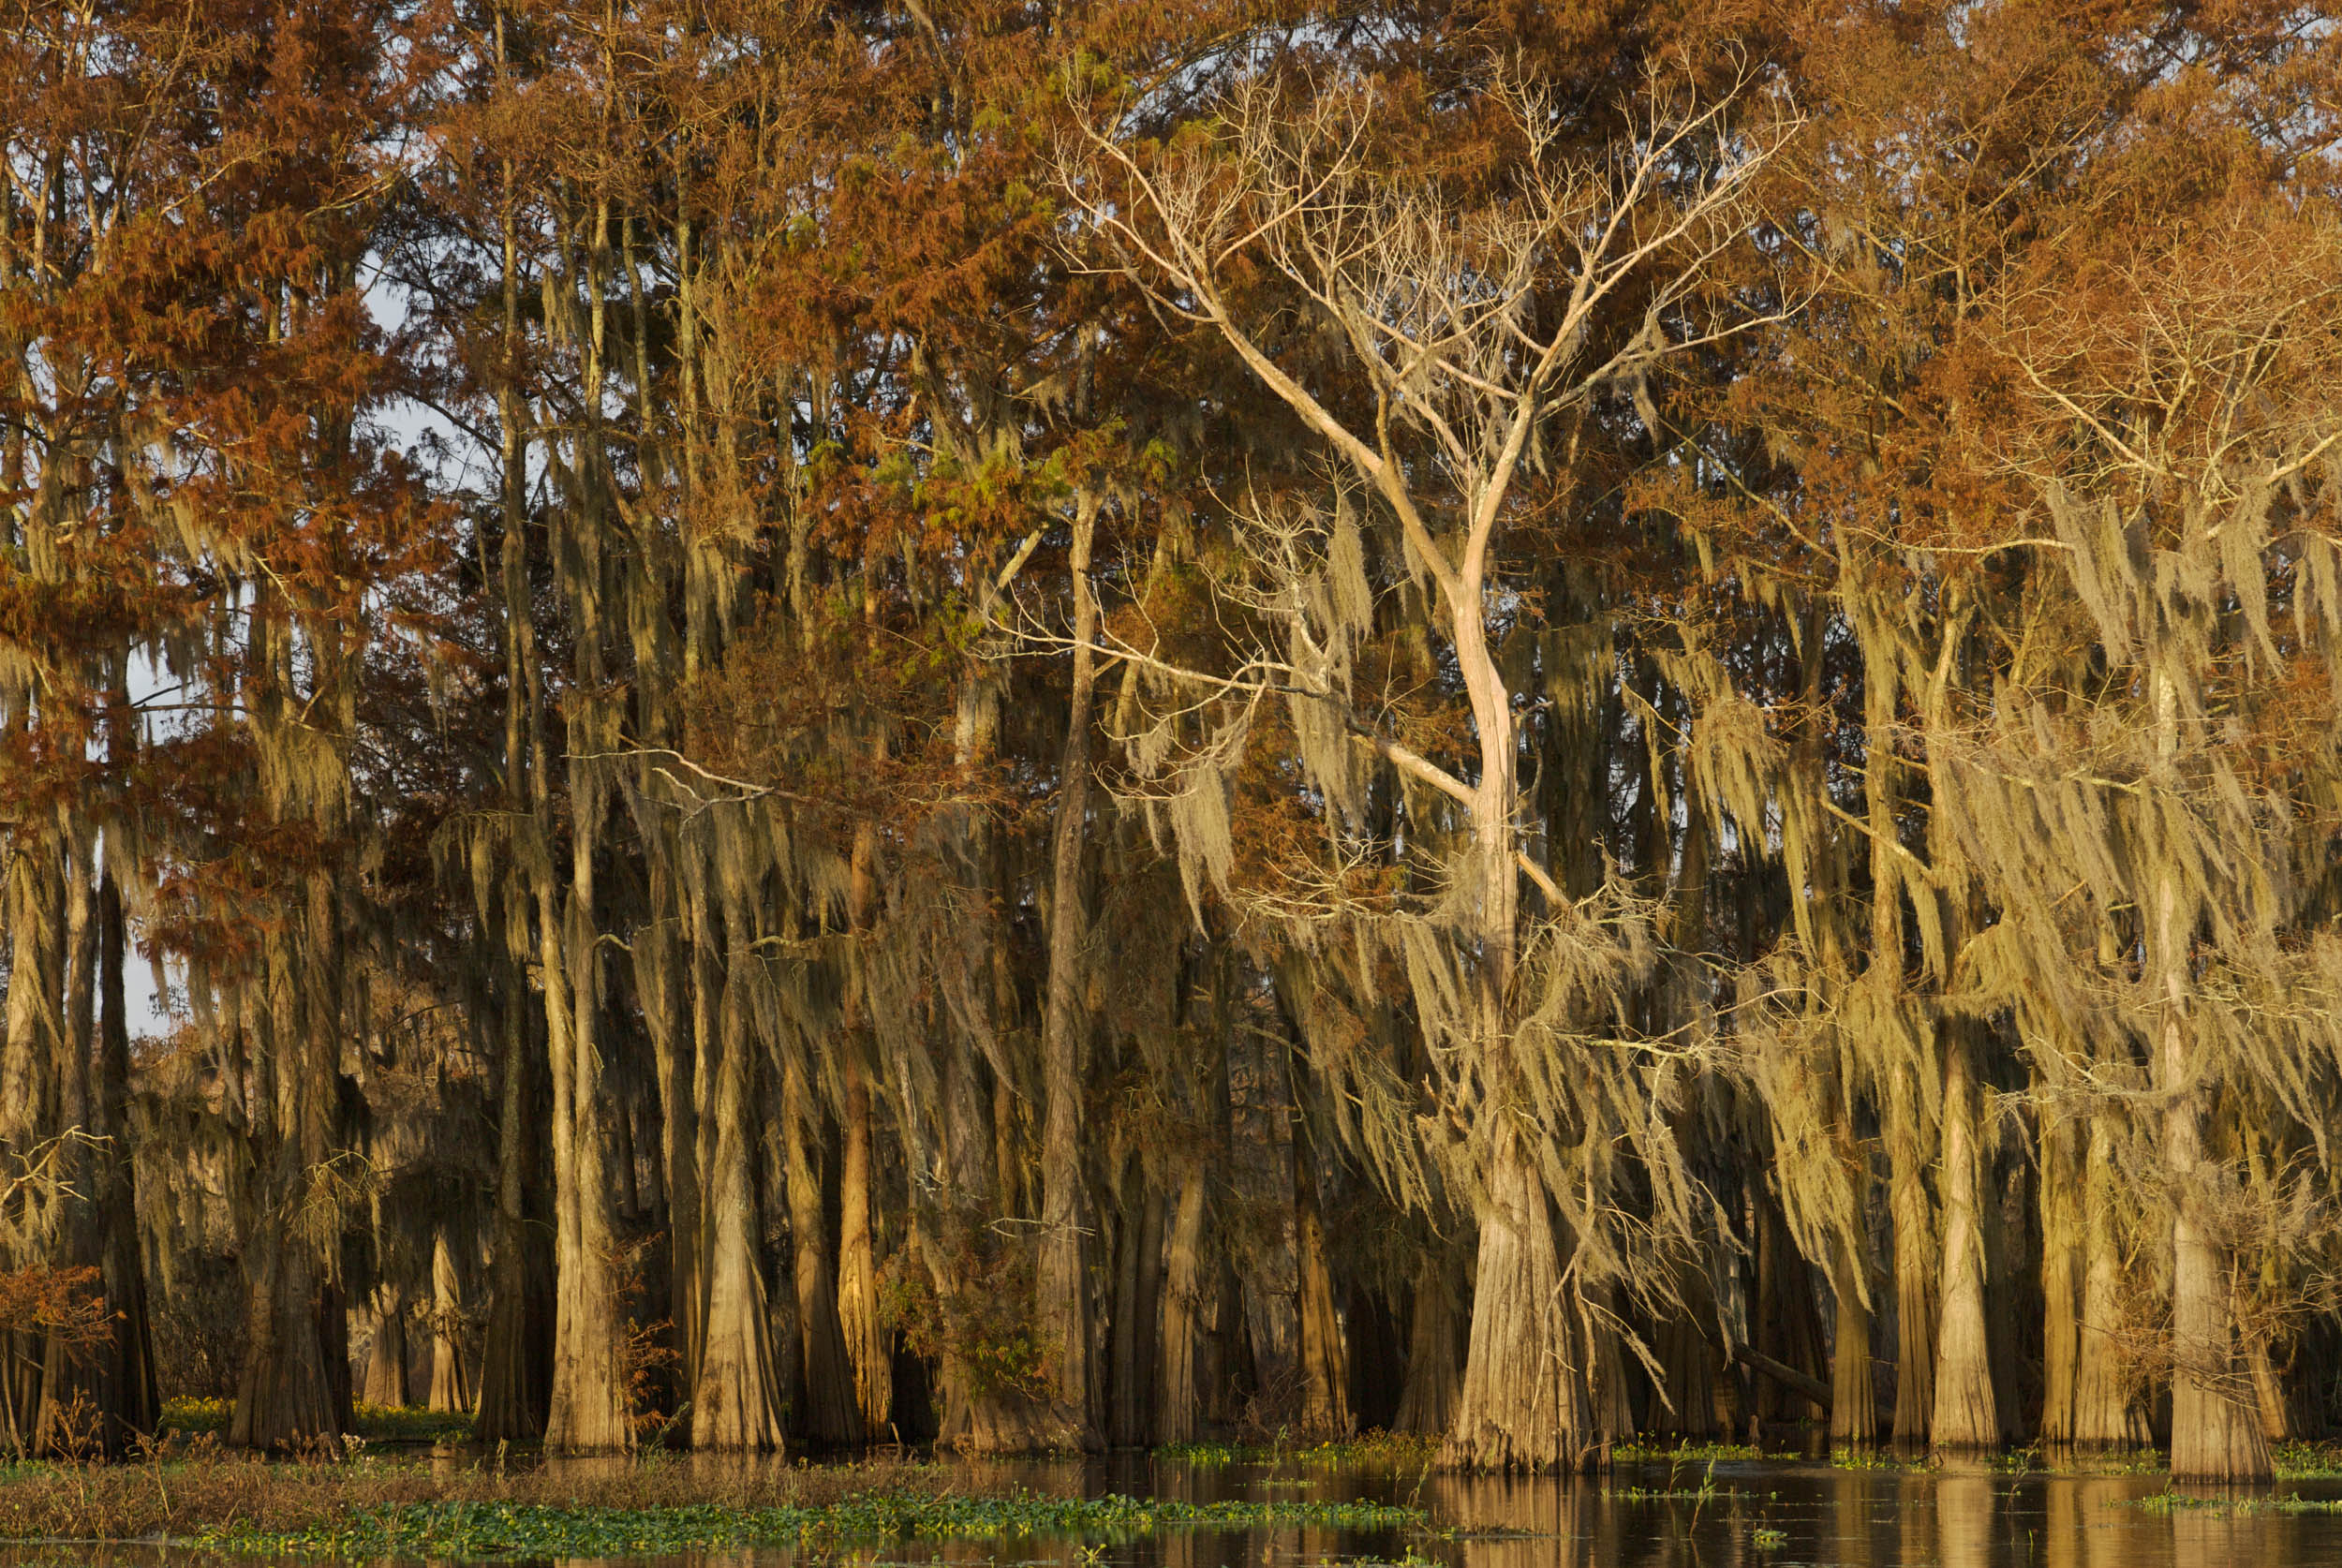 Atchafalaya Basin Cypress - Fall Foliage